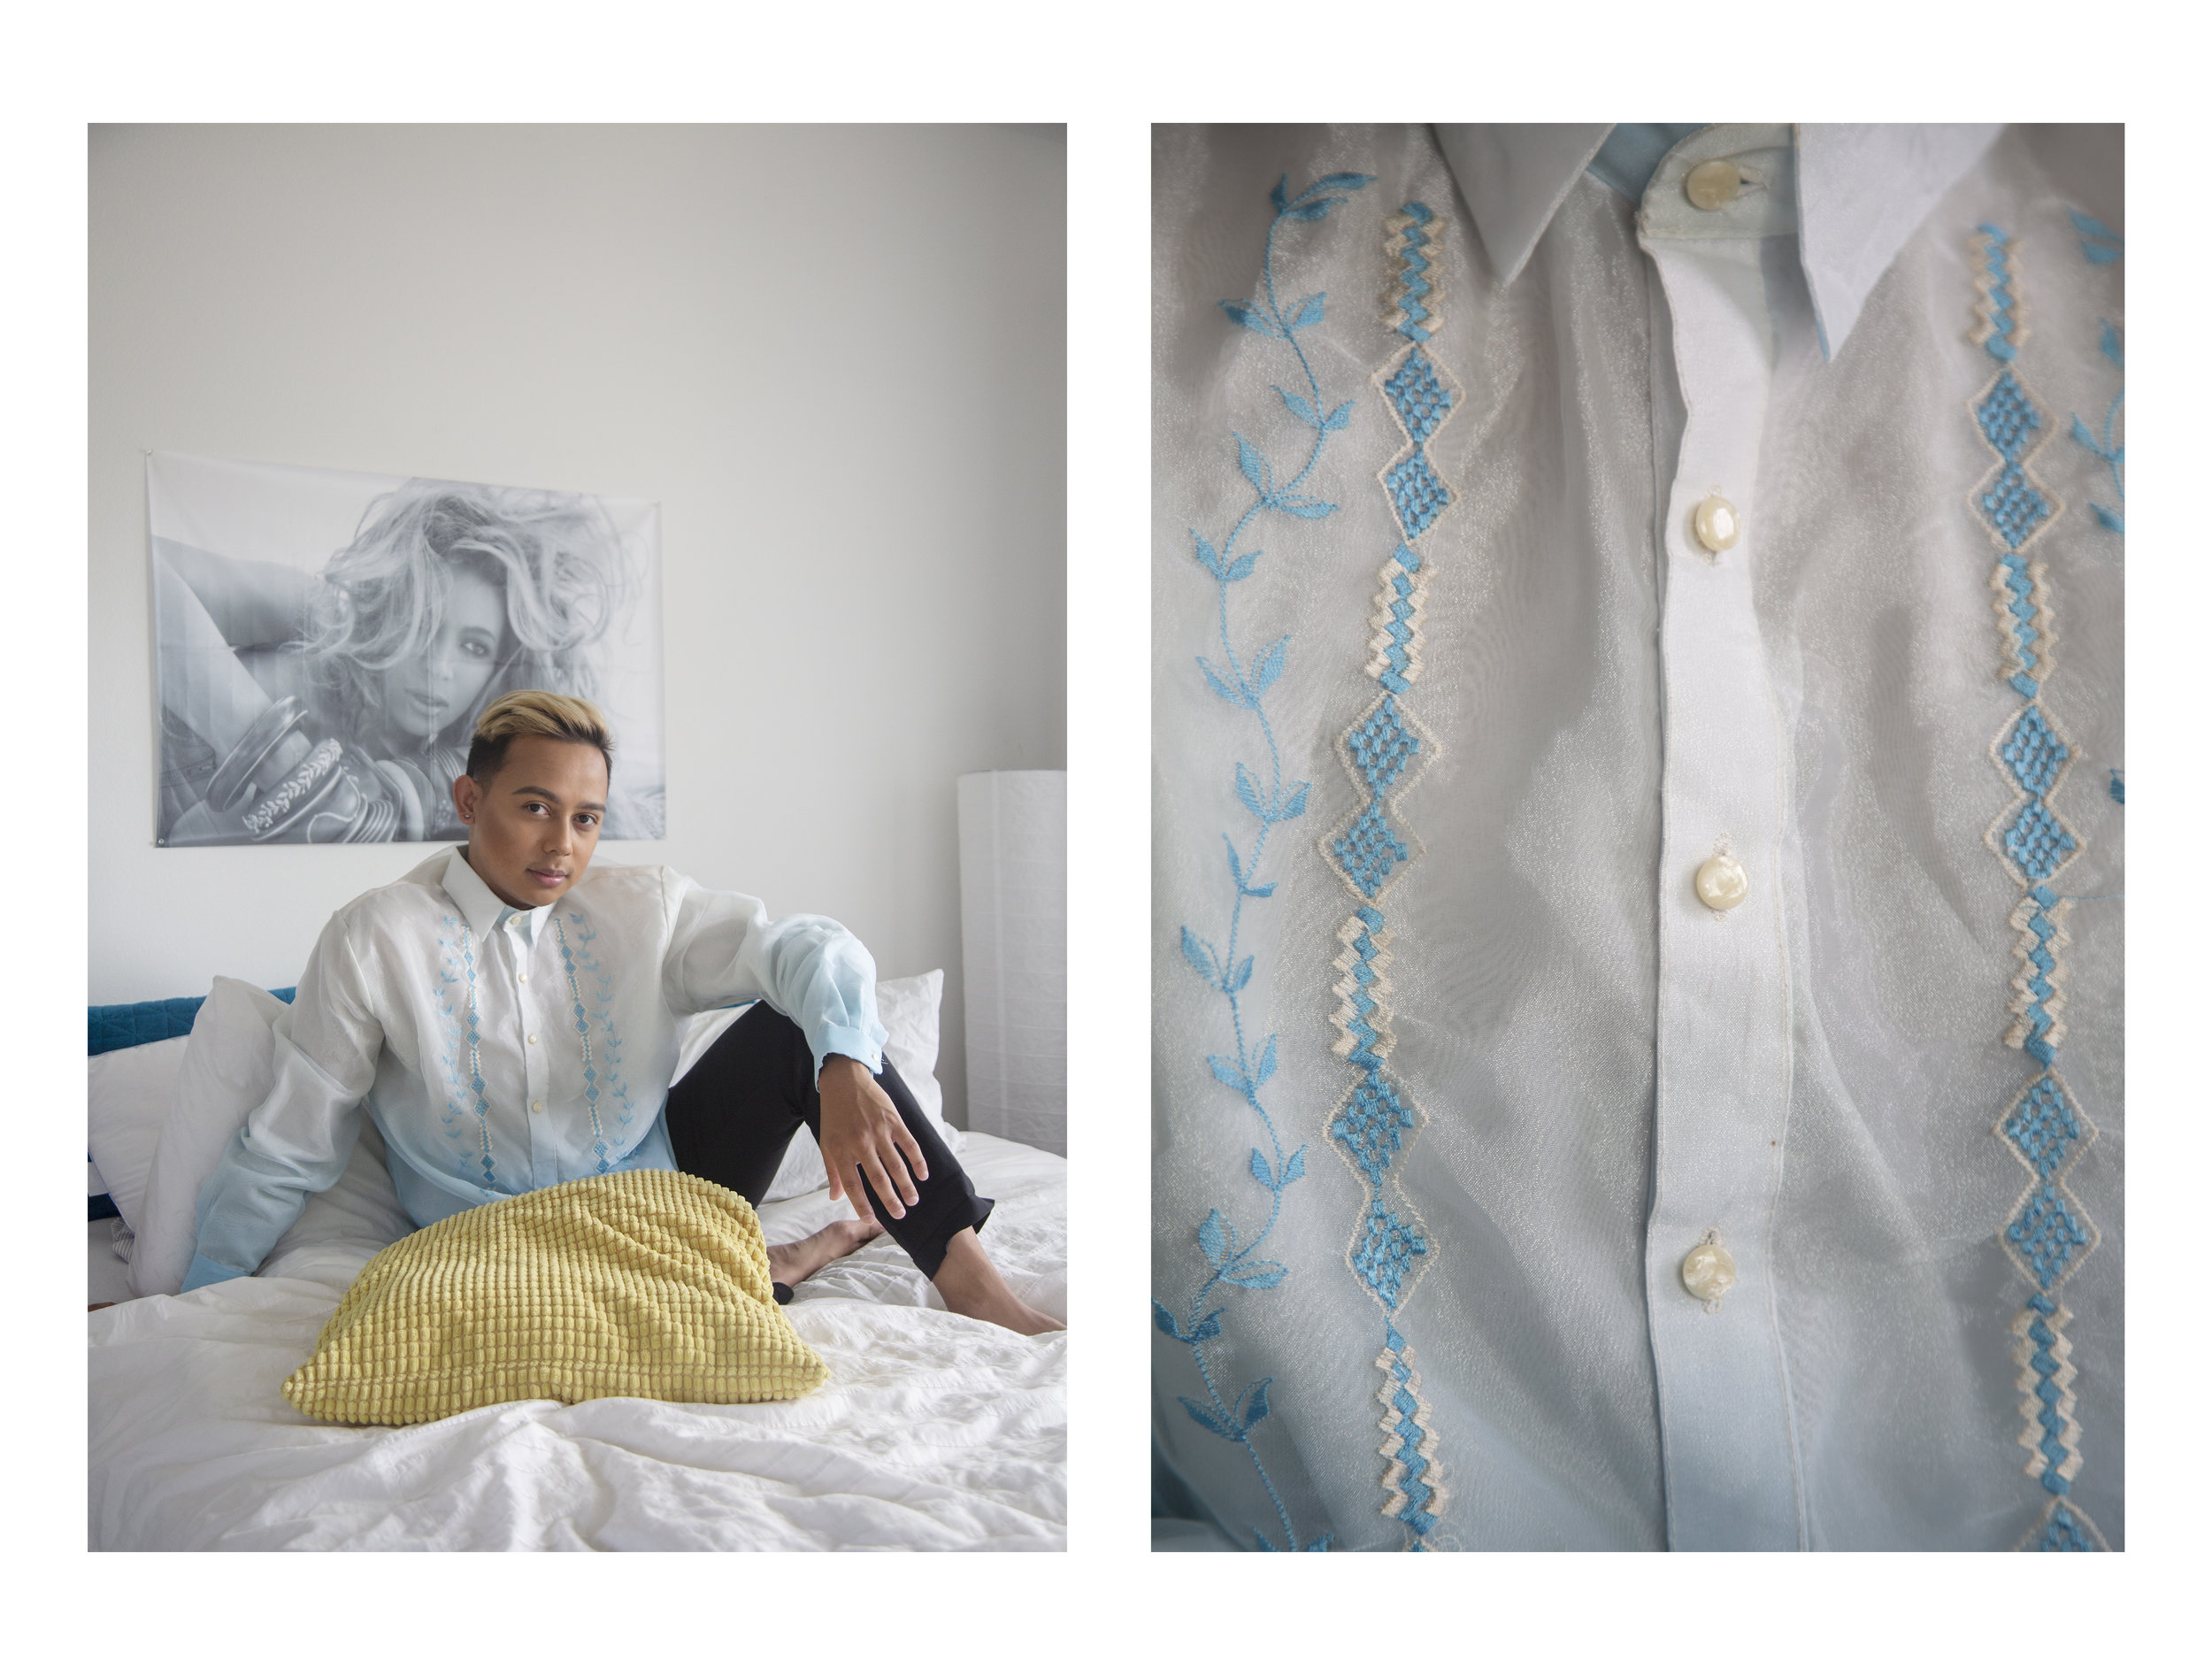 Logan Paracuelles poses for a portrait in their Wahiawa, HI home wearing a Barong Tagalog, a traditional sheer formal shirt from the Philippines.